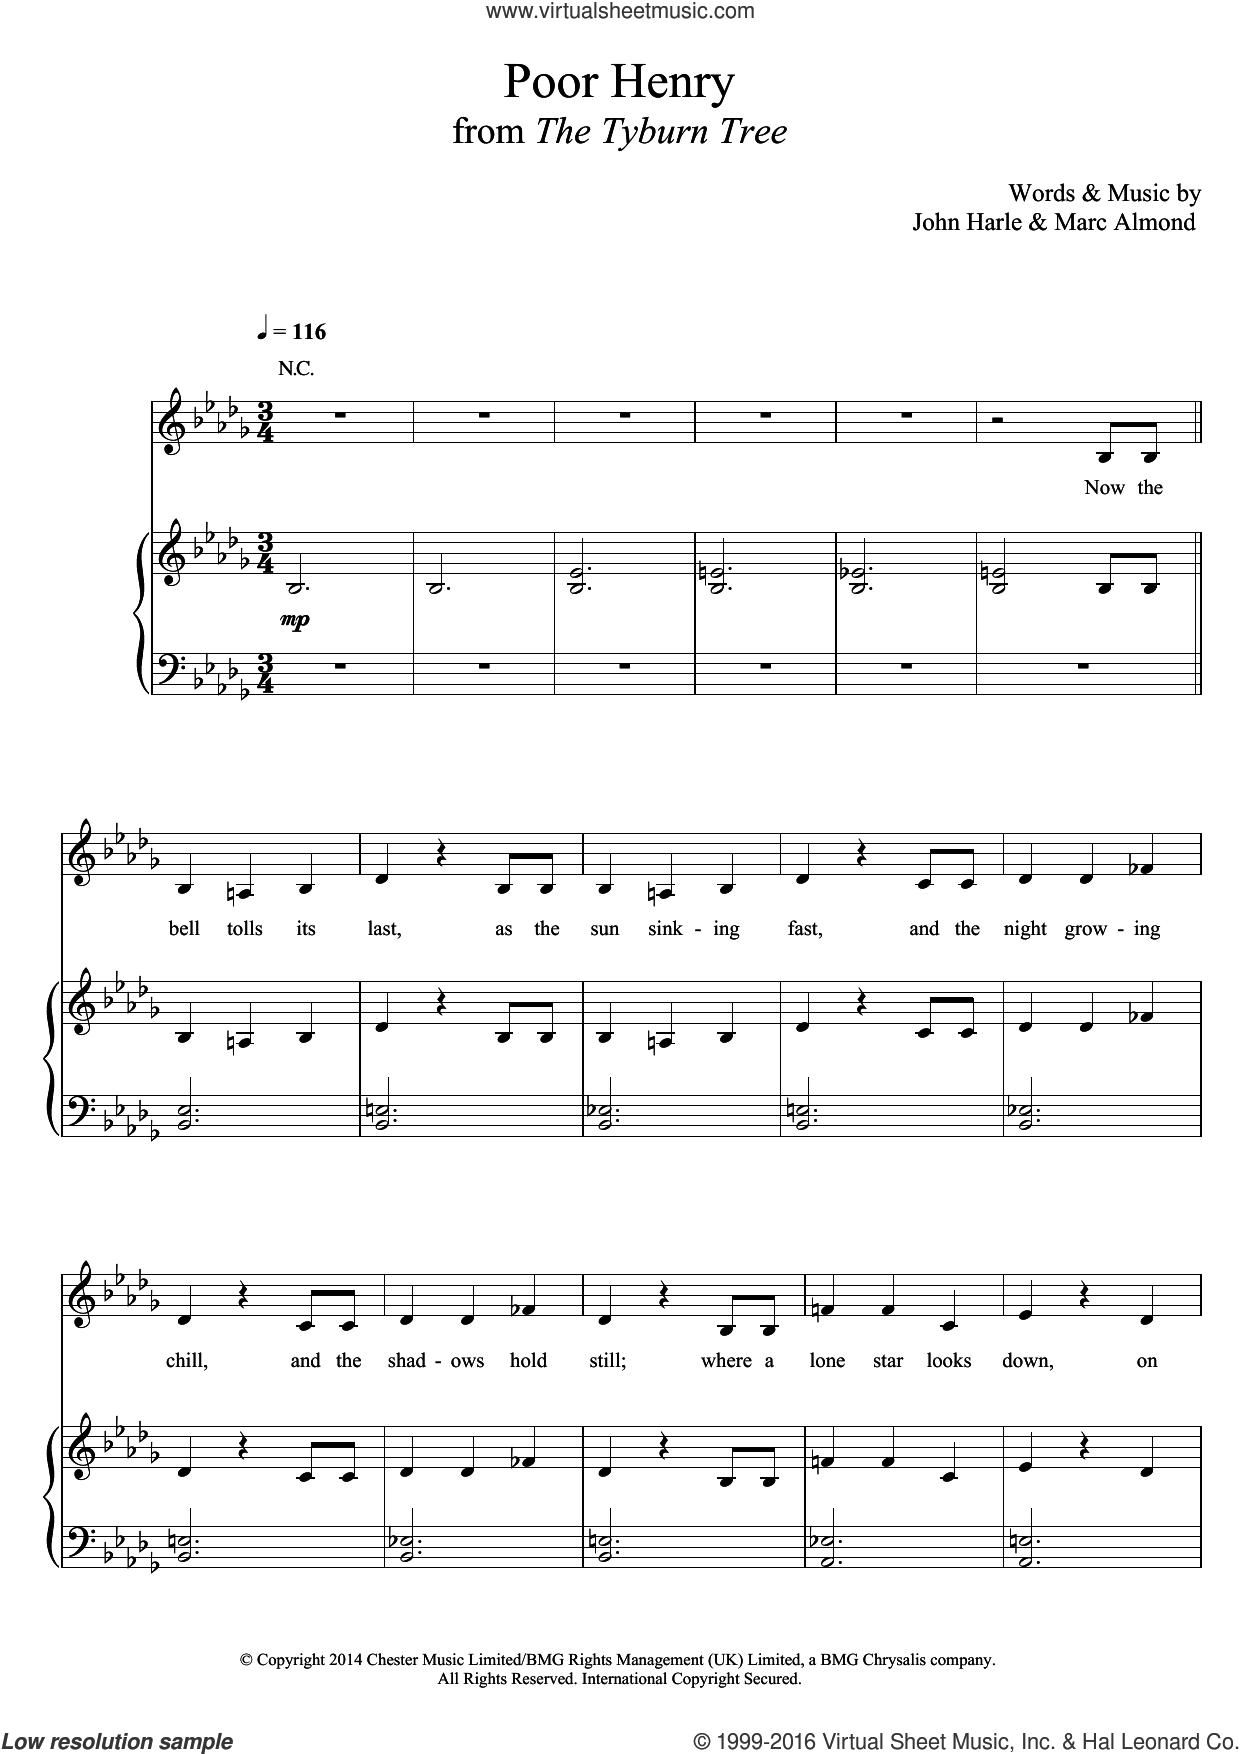 Poor Henry sheet music for voice, piano or guitar by John Harle & Marc Almond, John Harle and Marc Almond, classical score, intermediate skill level